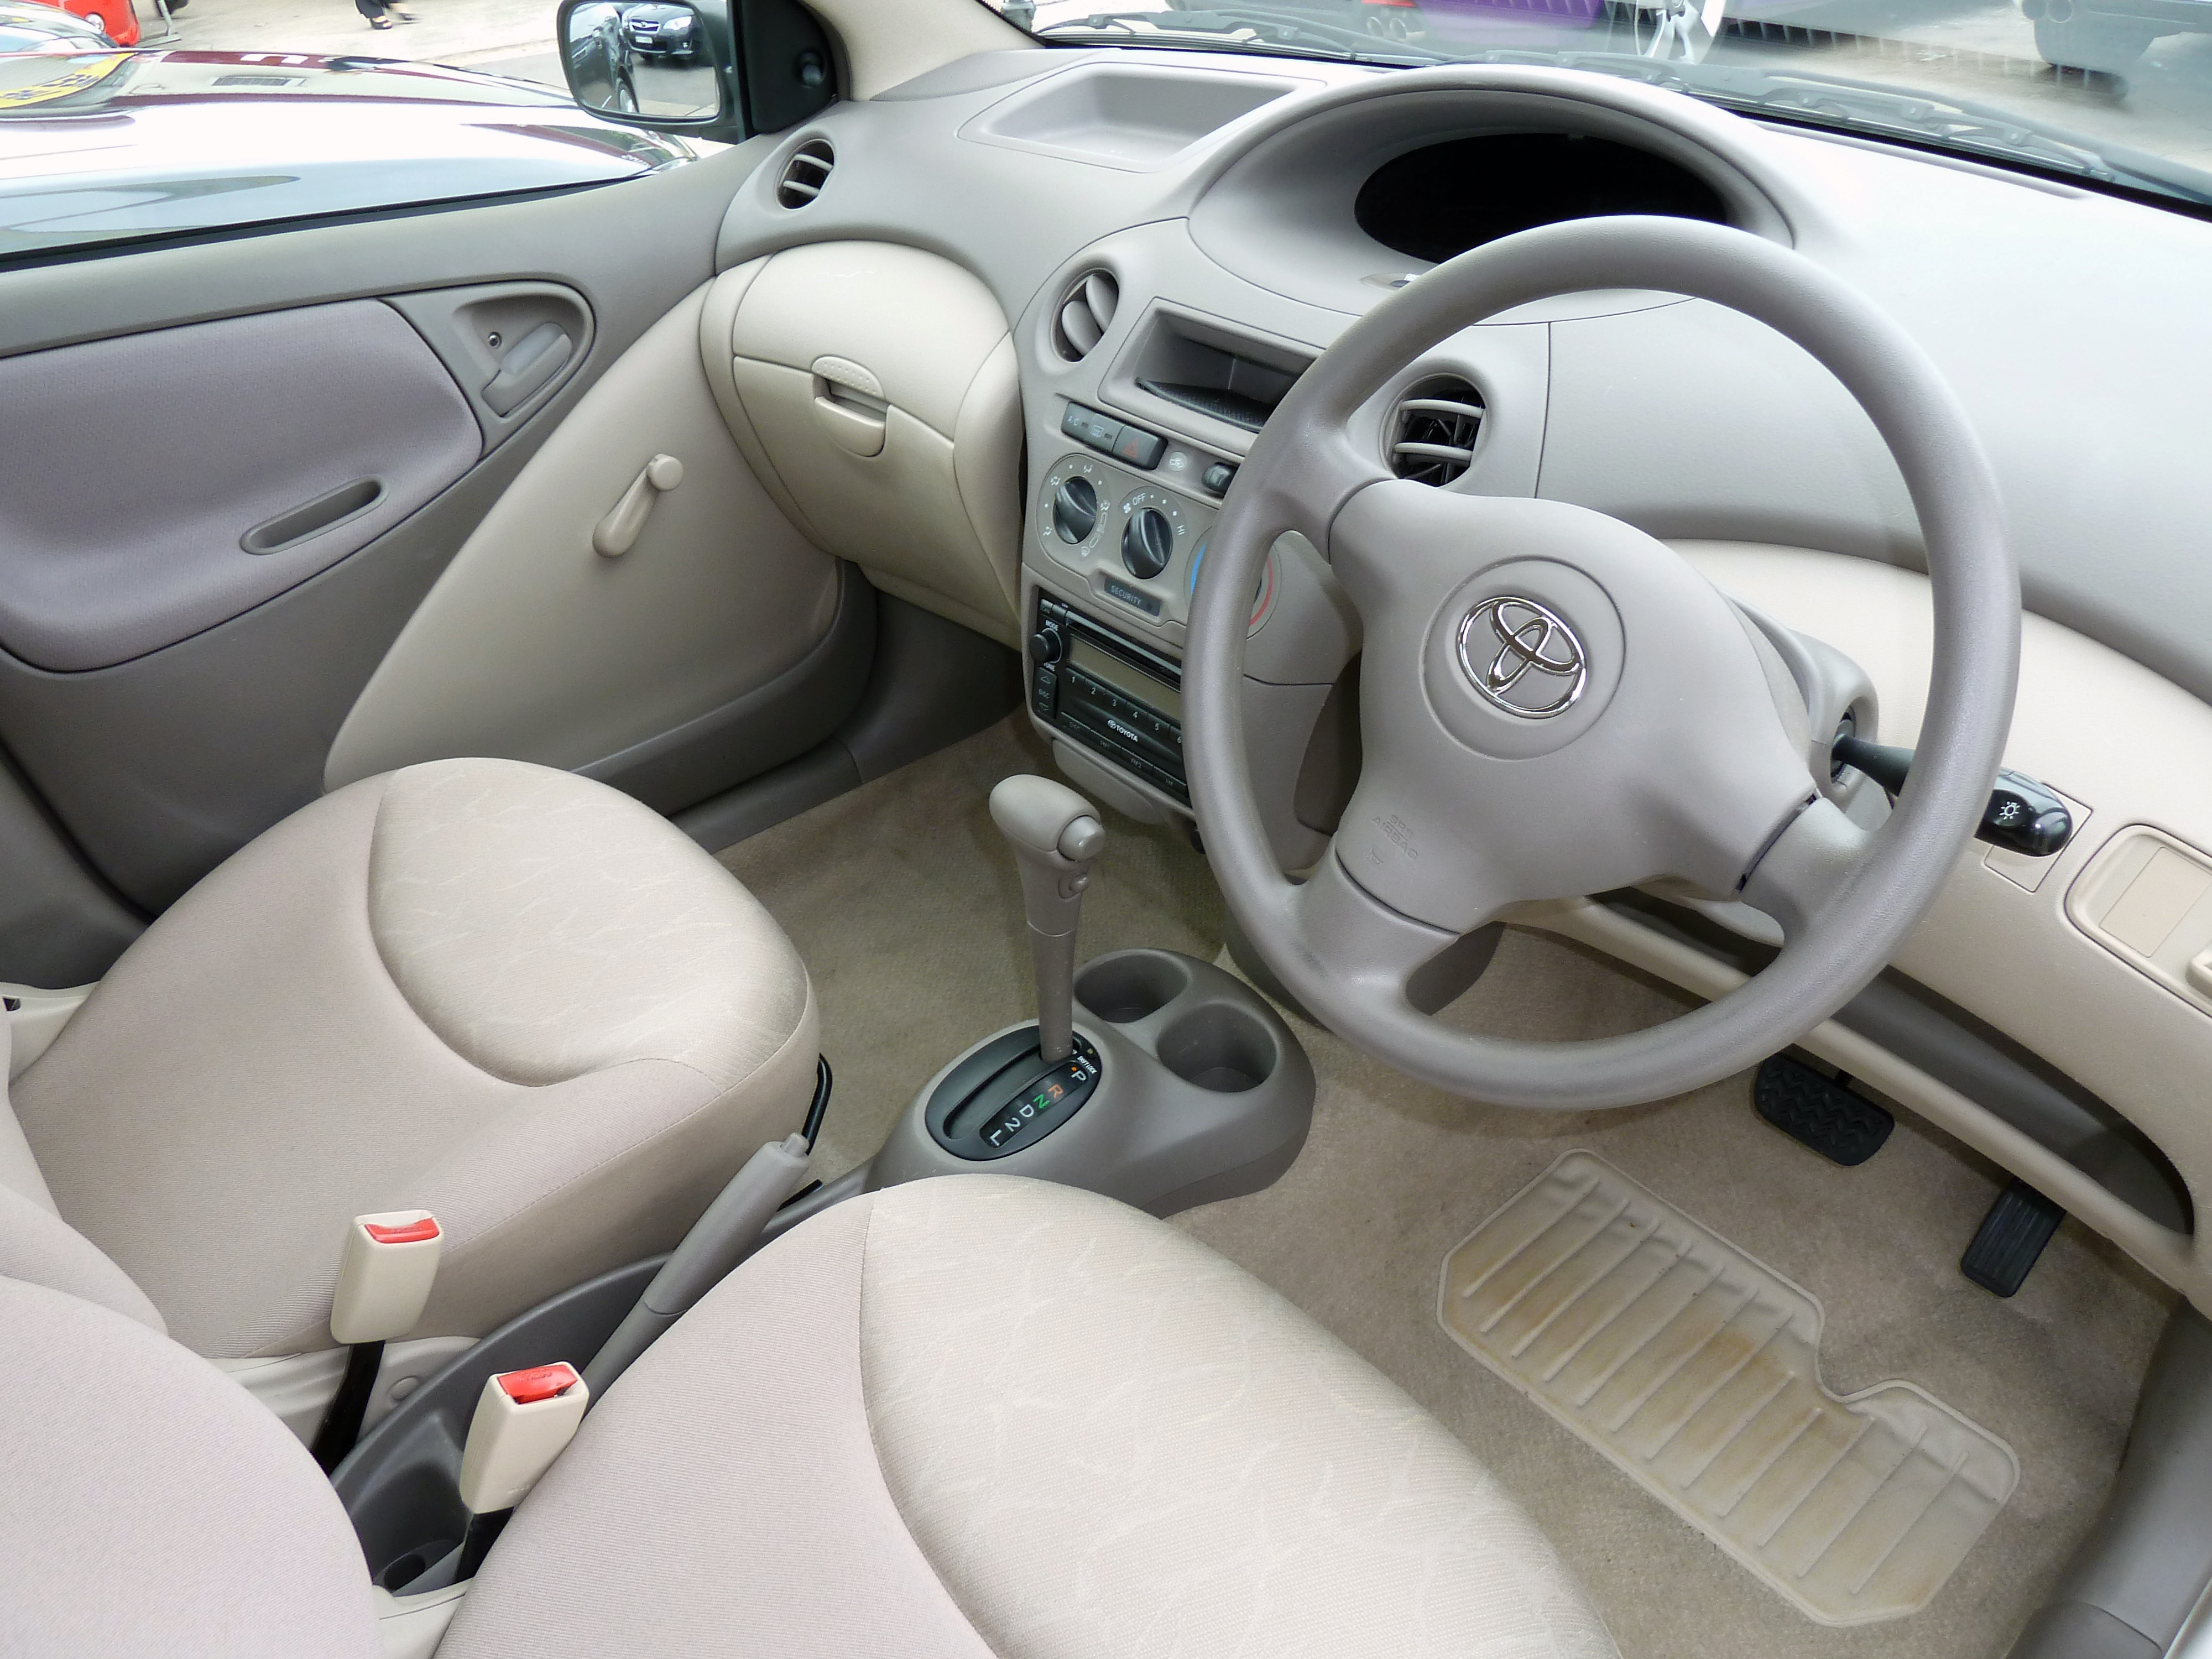 2000 Toyota Duet Wiring Diagram Circuit Schematic Whirlpool Washer Motor 2004 Echo Information And Photos Zombiedrive